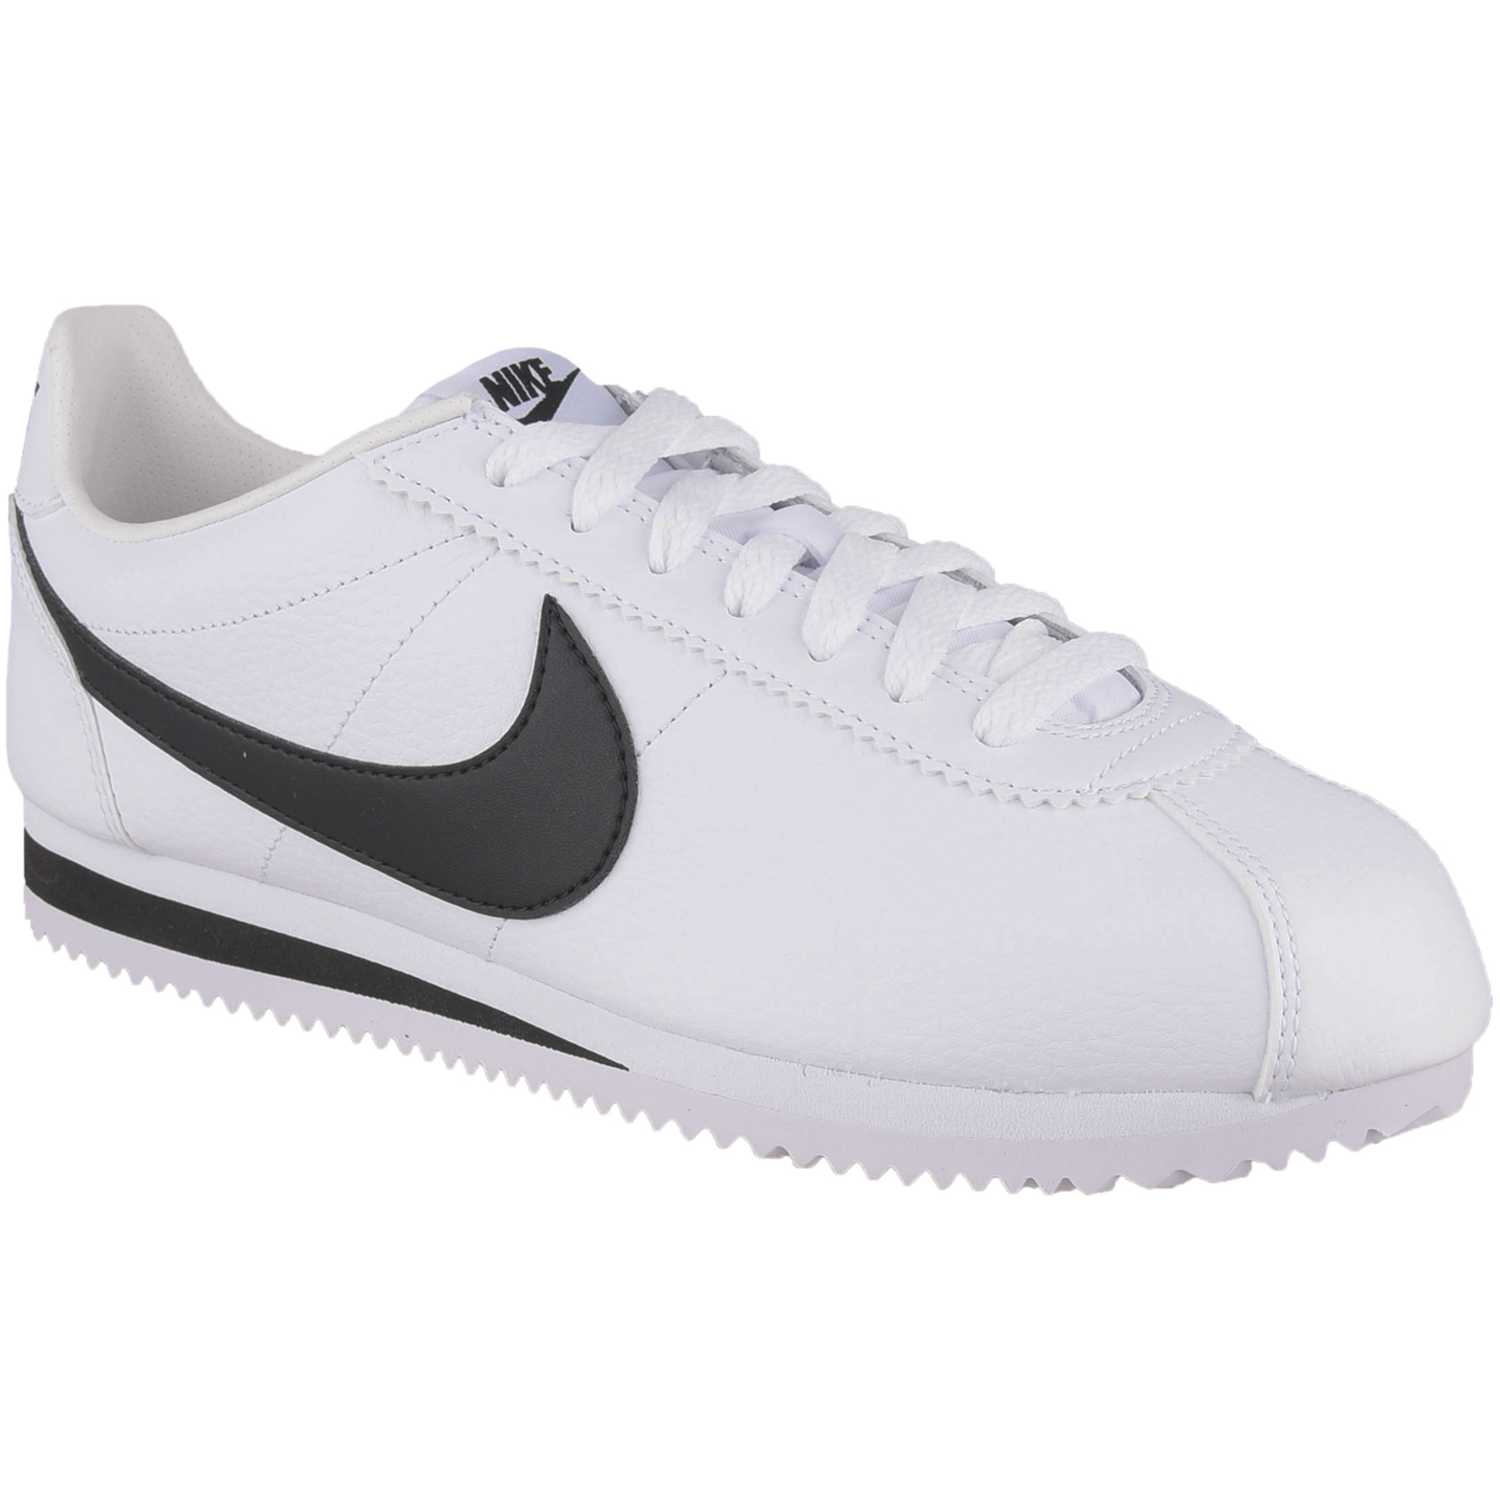 Nike classic cortez leather Blanco negro Walking